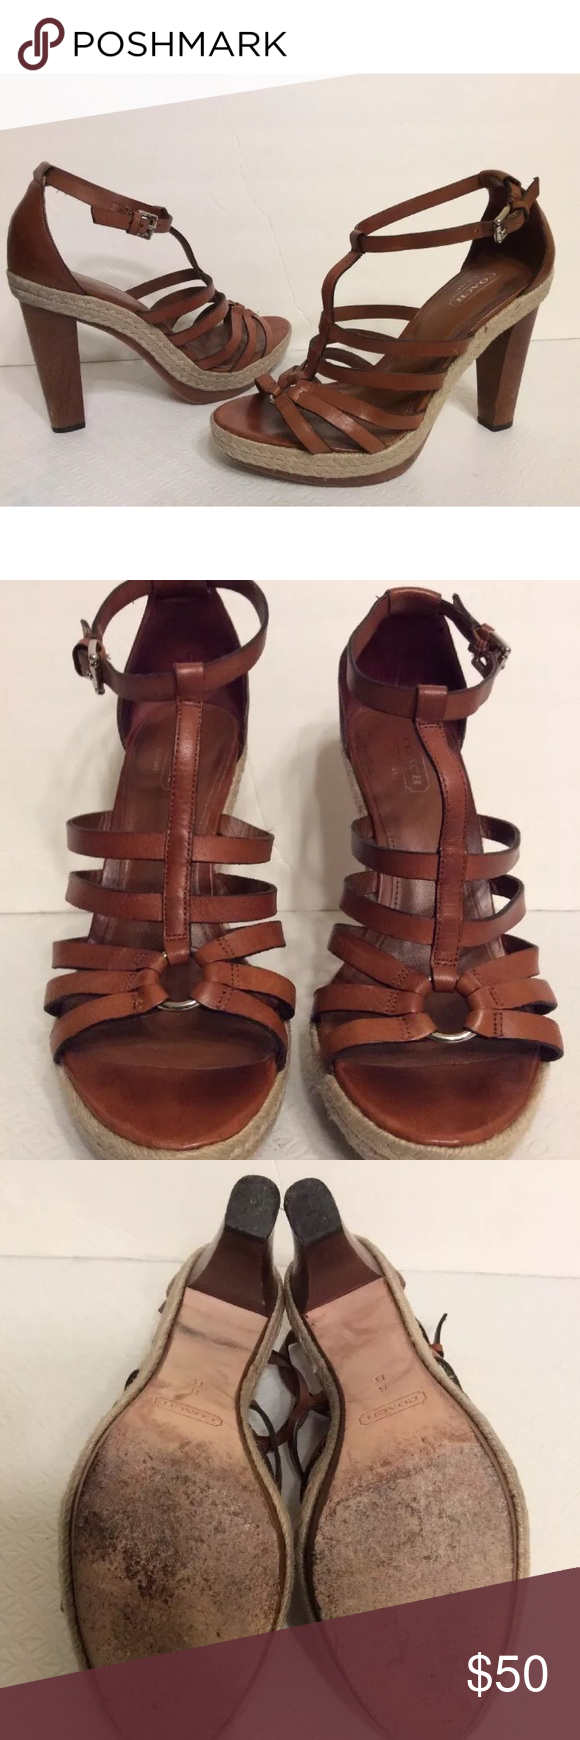 "Coach Platform Heels Size 8 Coach Delanie Platform Heels Size- 8M Color- Cognac Brown Cute platform leather sandals with wooden heel measuring approx. 4.5"" sitting on a 1"" platform, strappy design, leather sole, adjustable ankle strap.  In great shape no major wear, please look at all pictures  THANK YOU FOR YOUR INTEREST Coach Shoes Platforms"